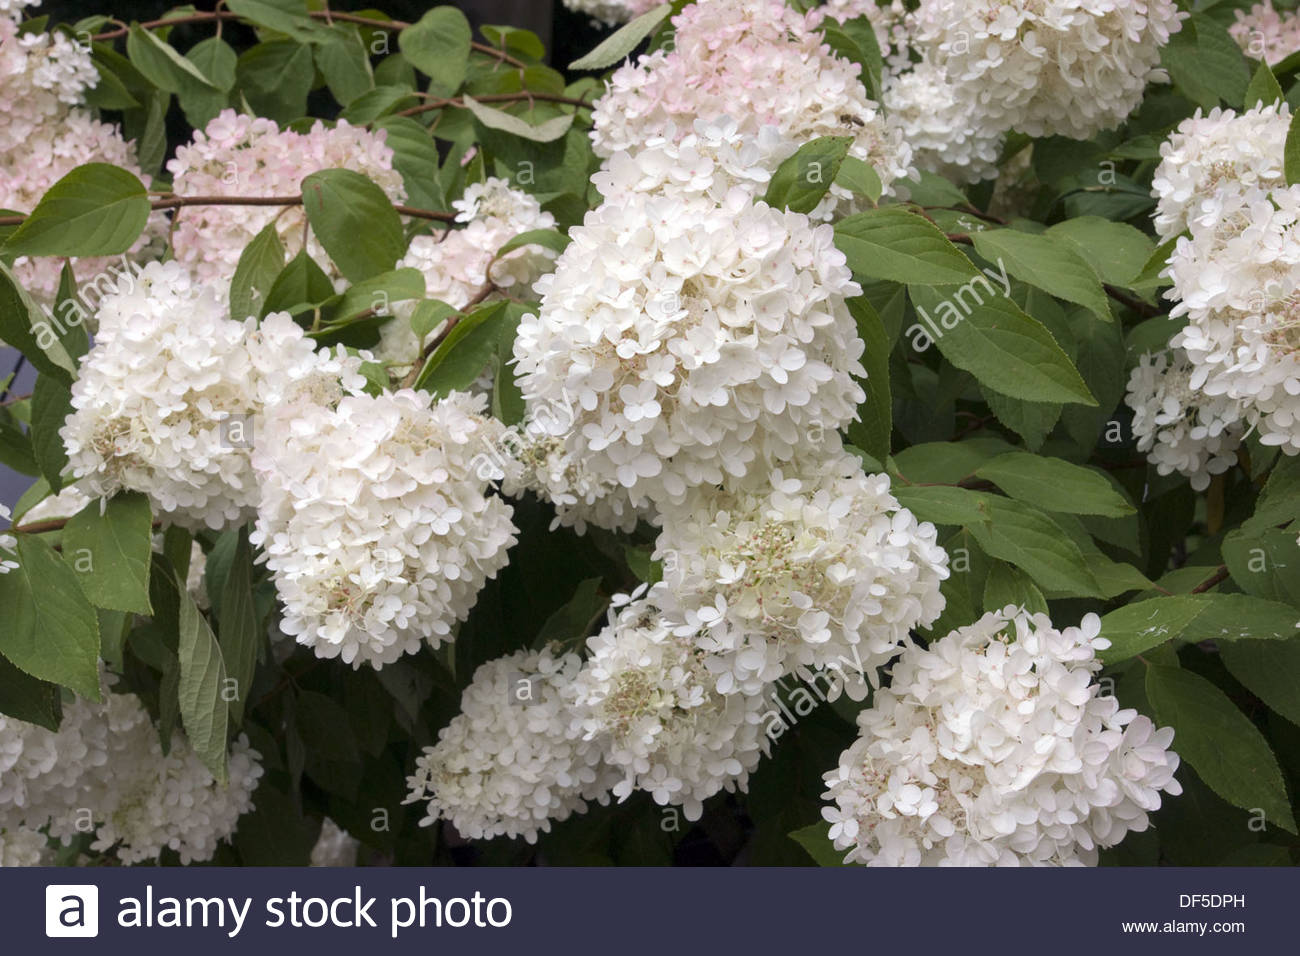 hydrangea paniculata phantom pee gee hortensie stock photo 60971529 alamy. Black Bedroom Furniture Sets. Home Design Ideas